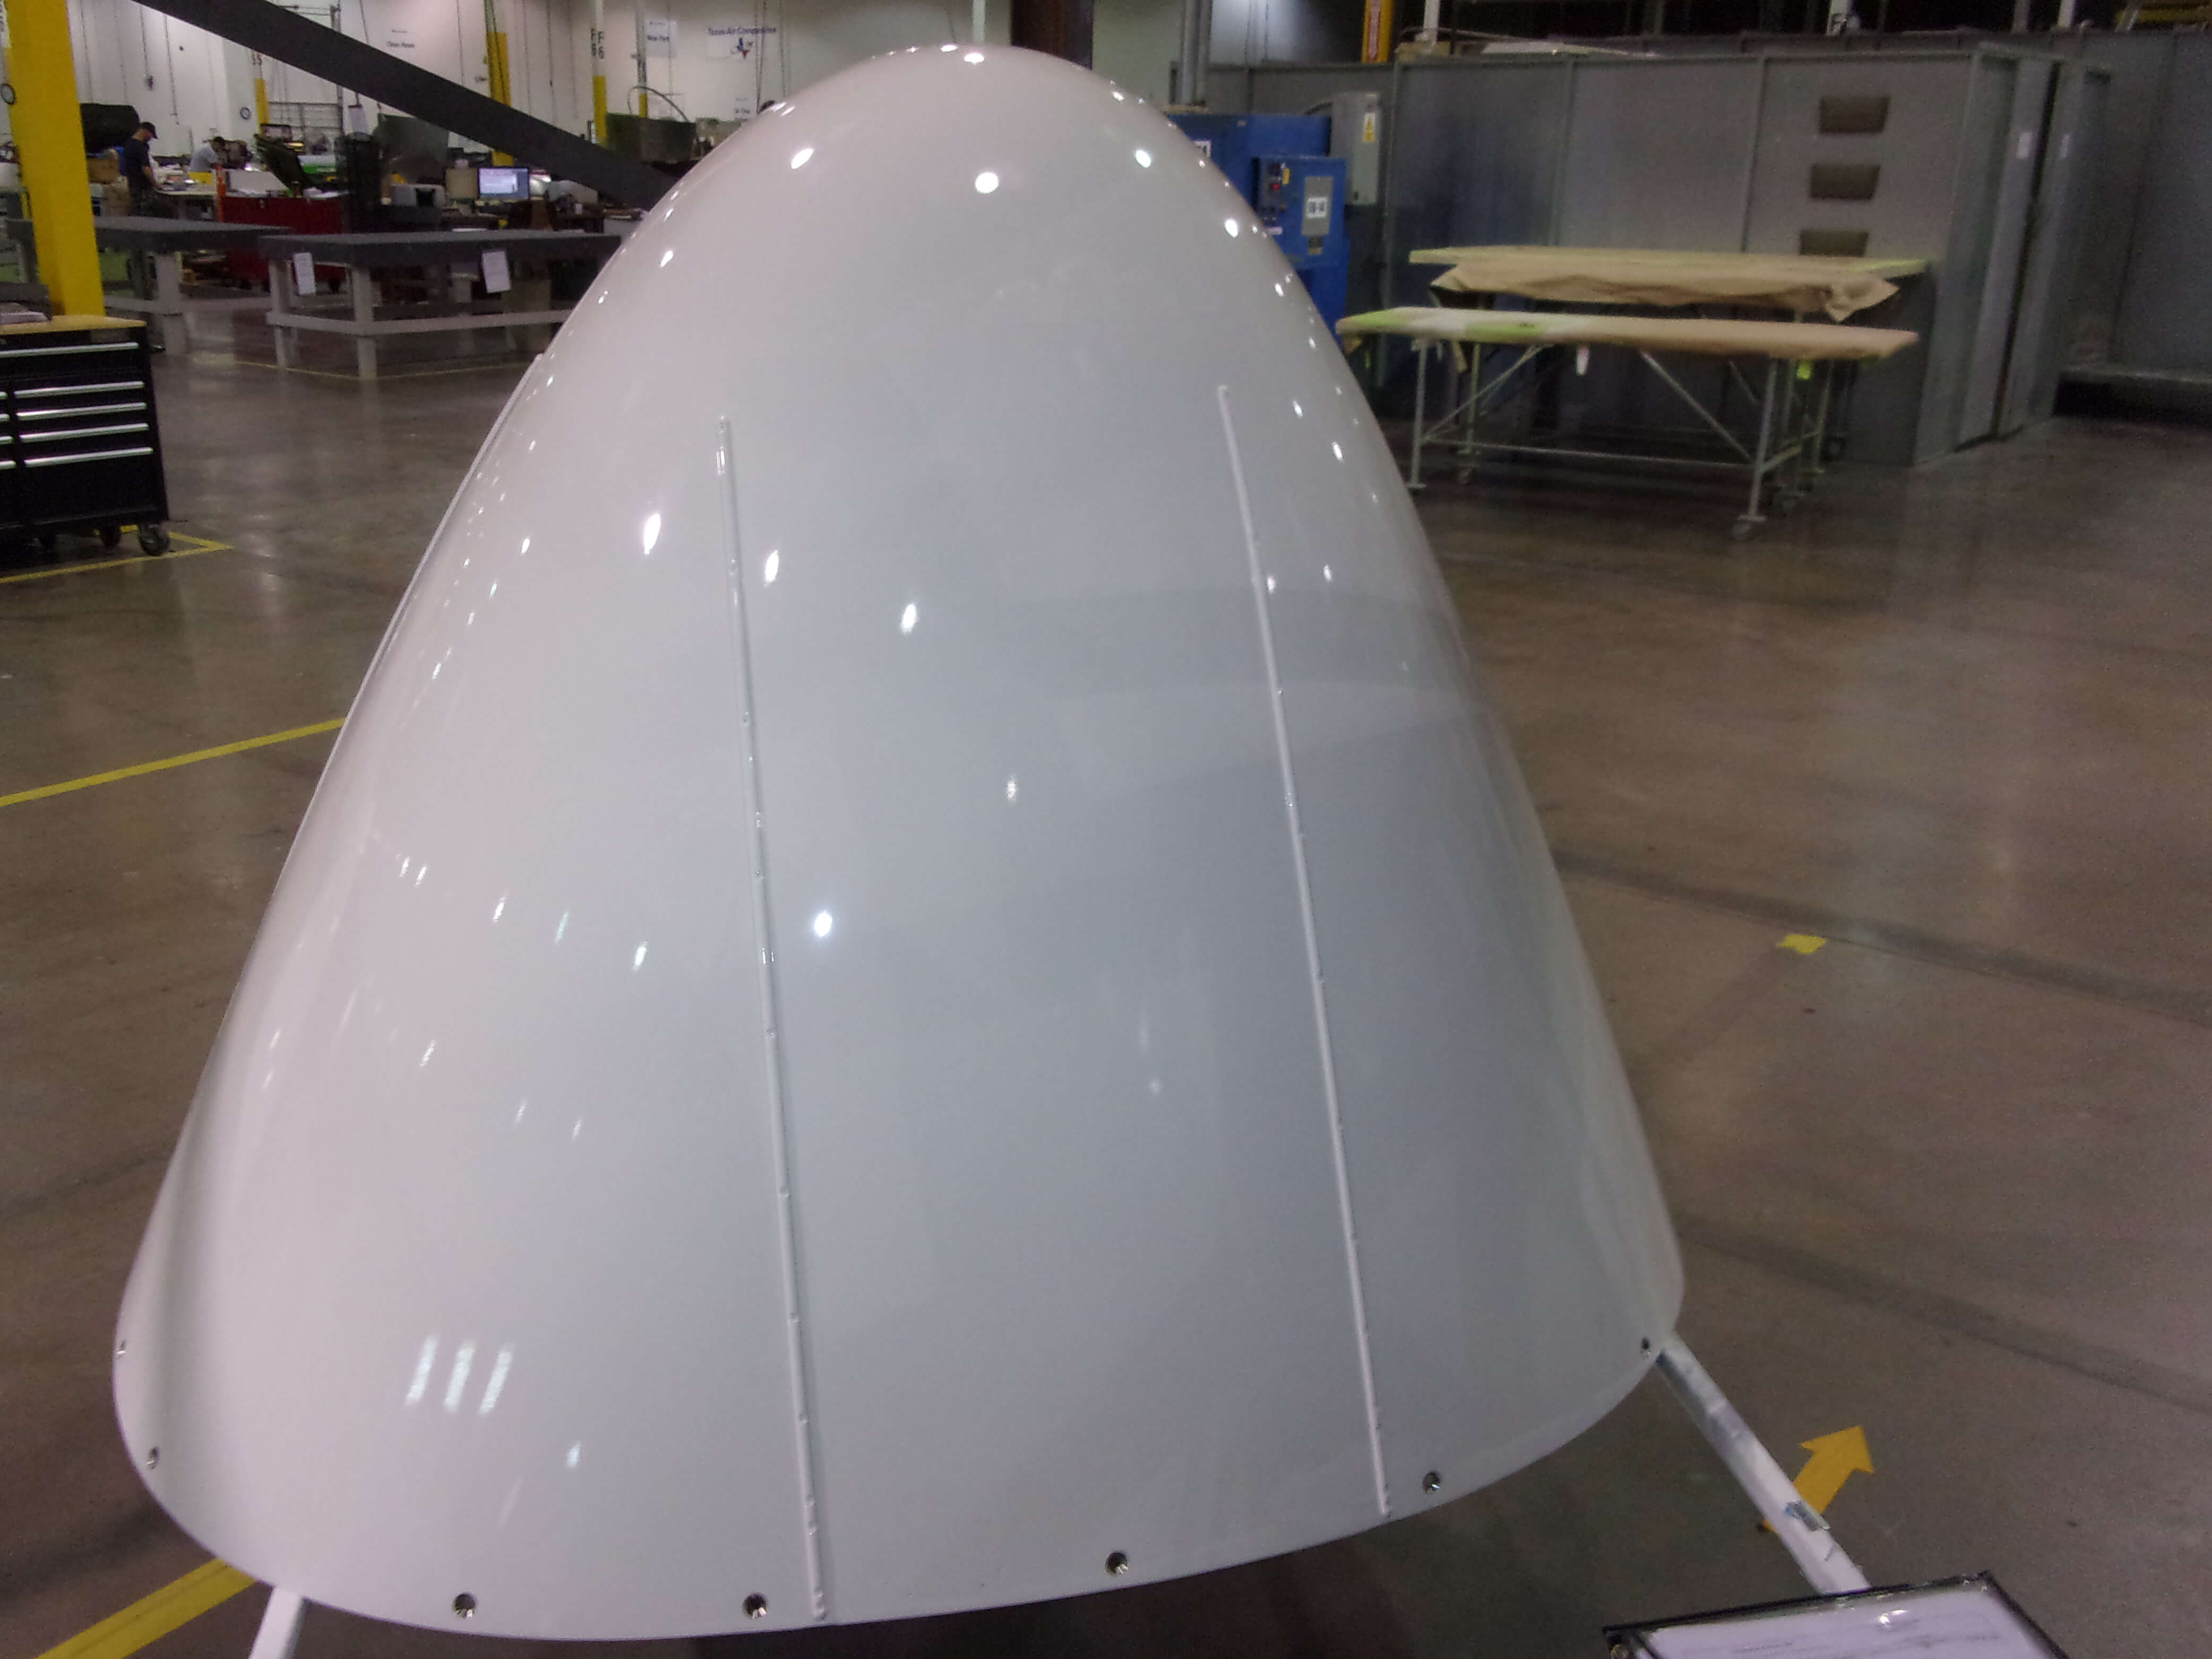 Final paint inspection on a B737 before shipping back to customer